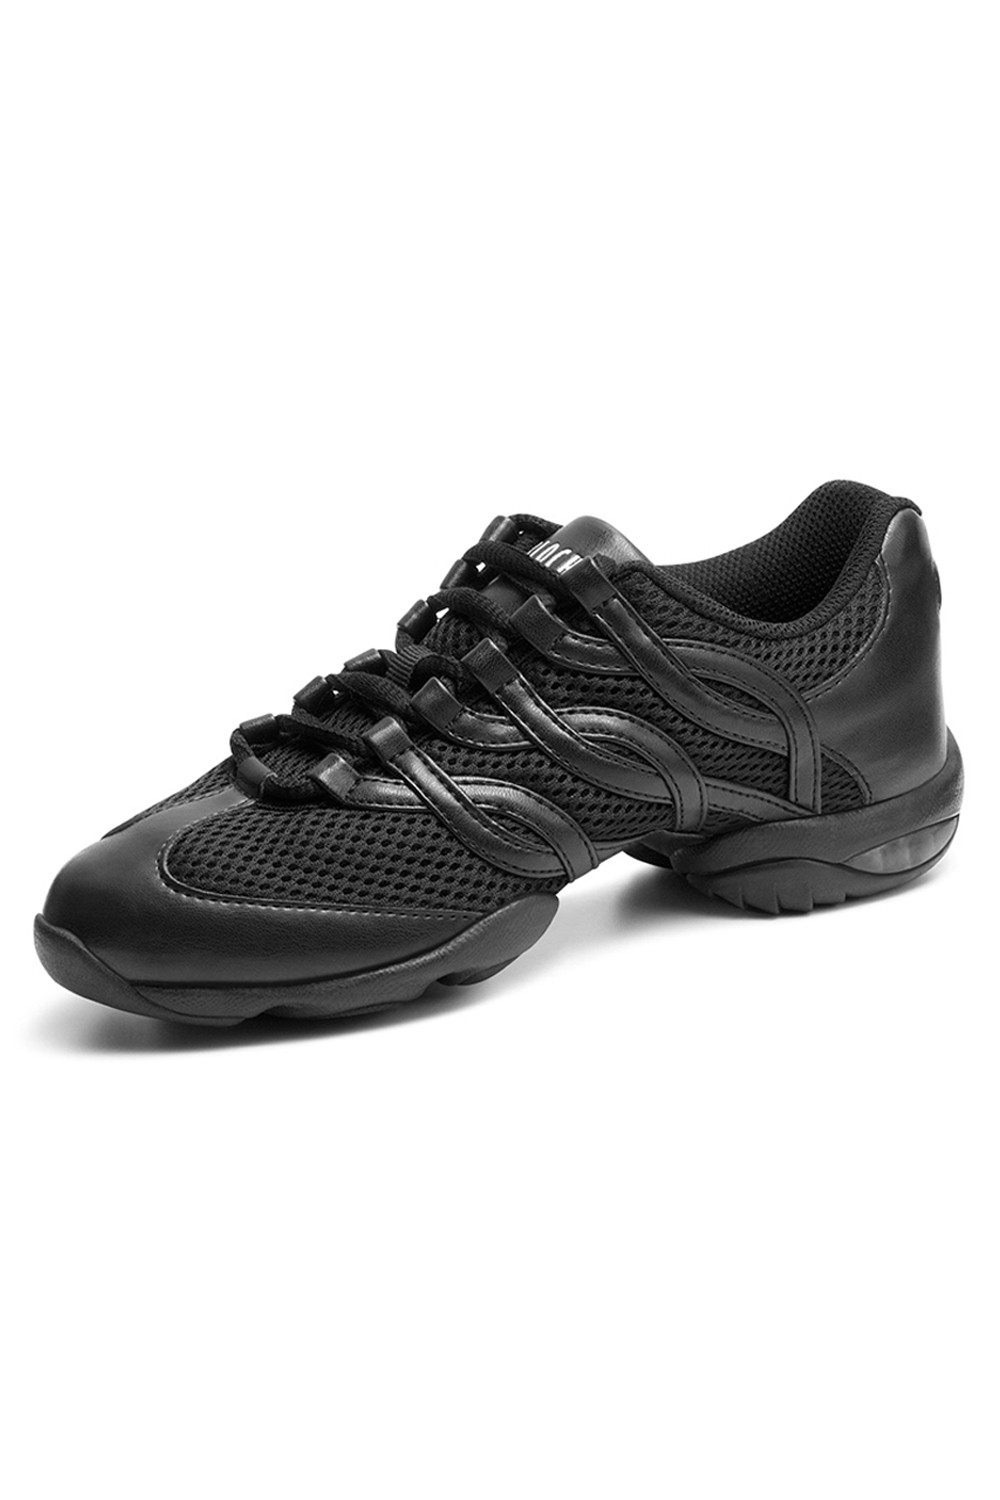 Twist - Men's Men's Dance Sneakers